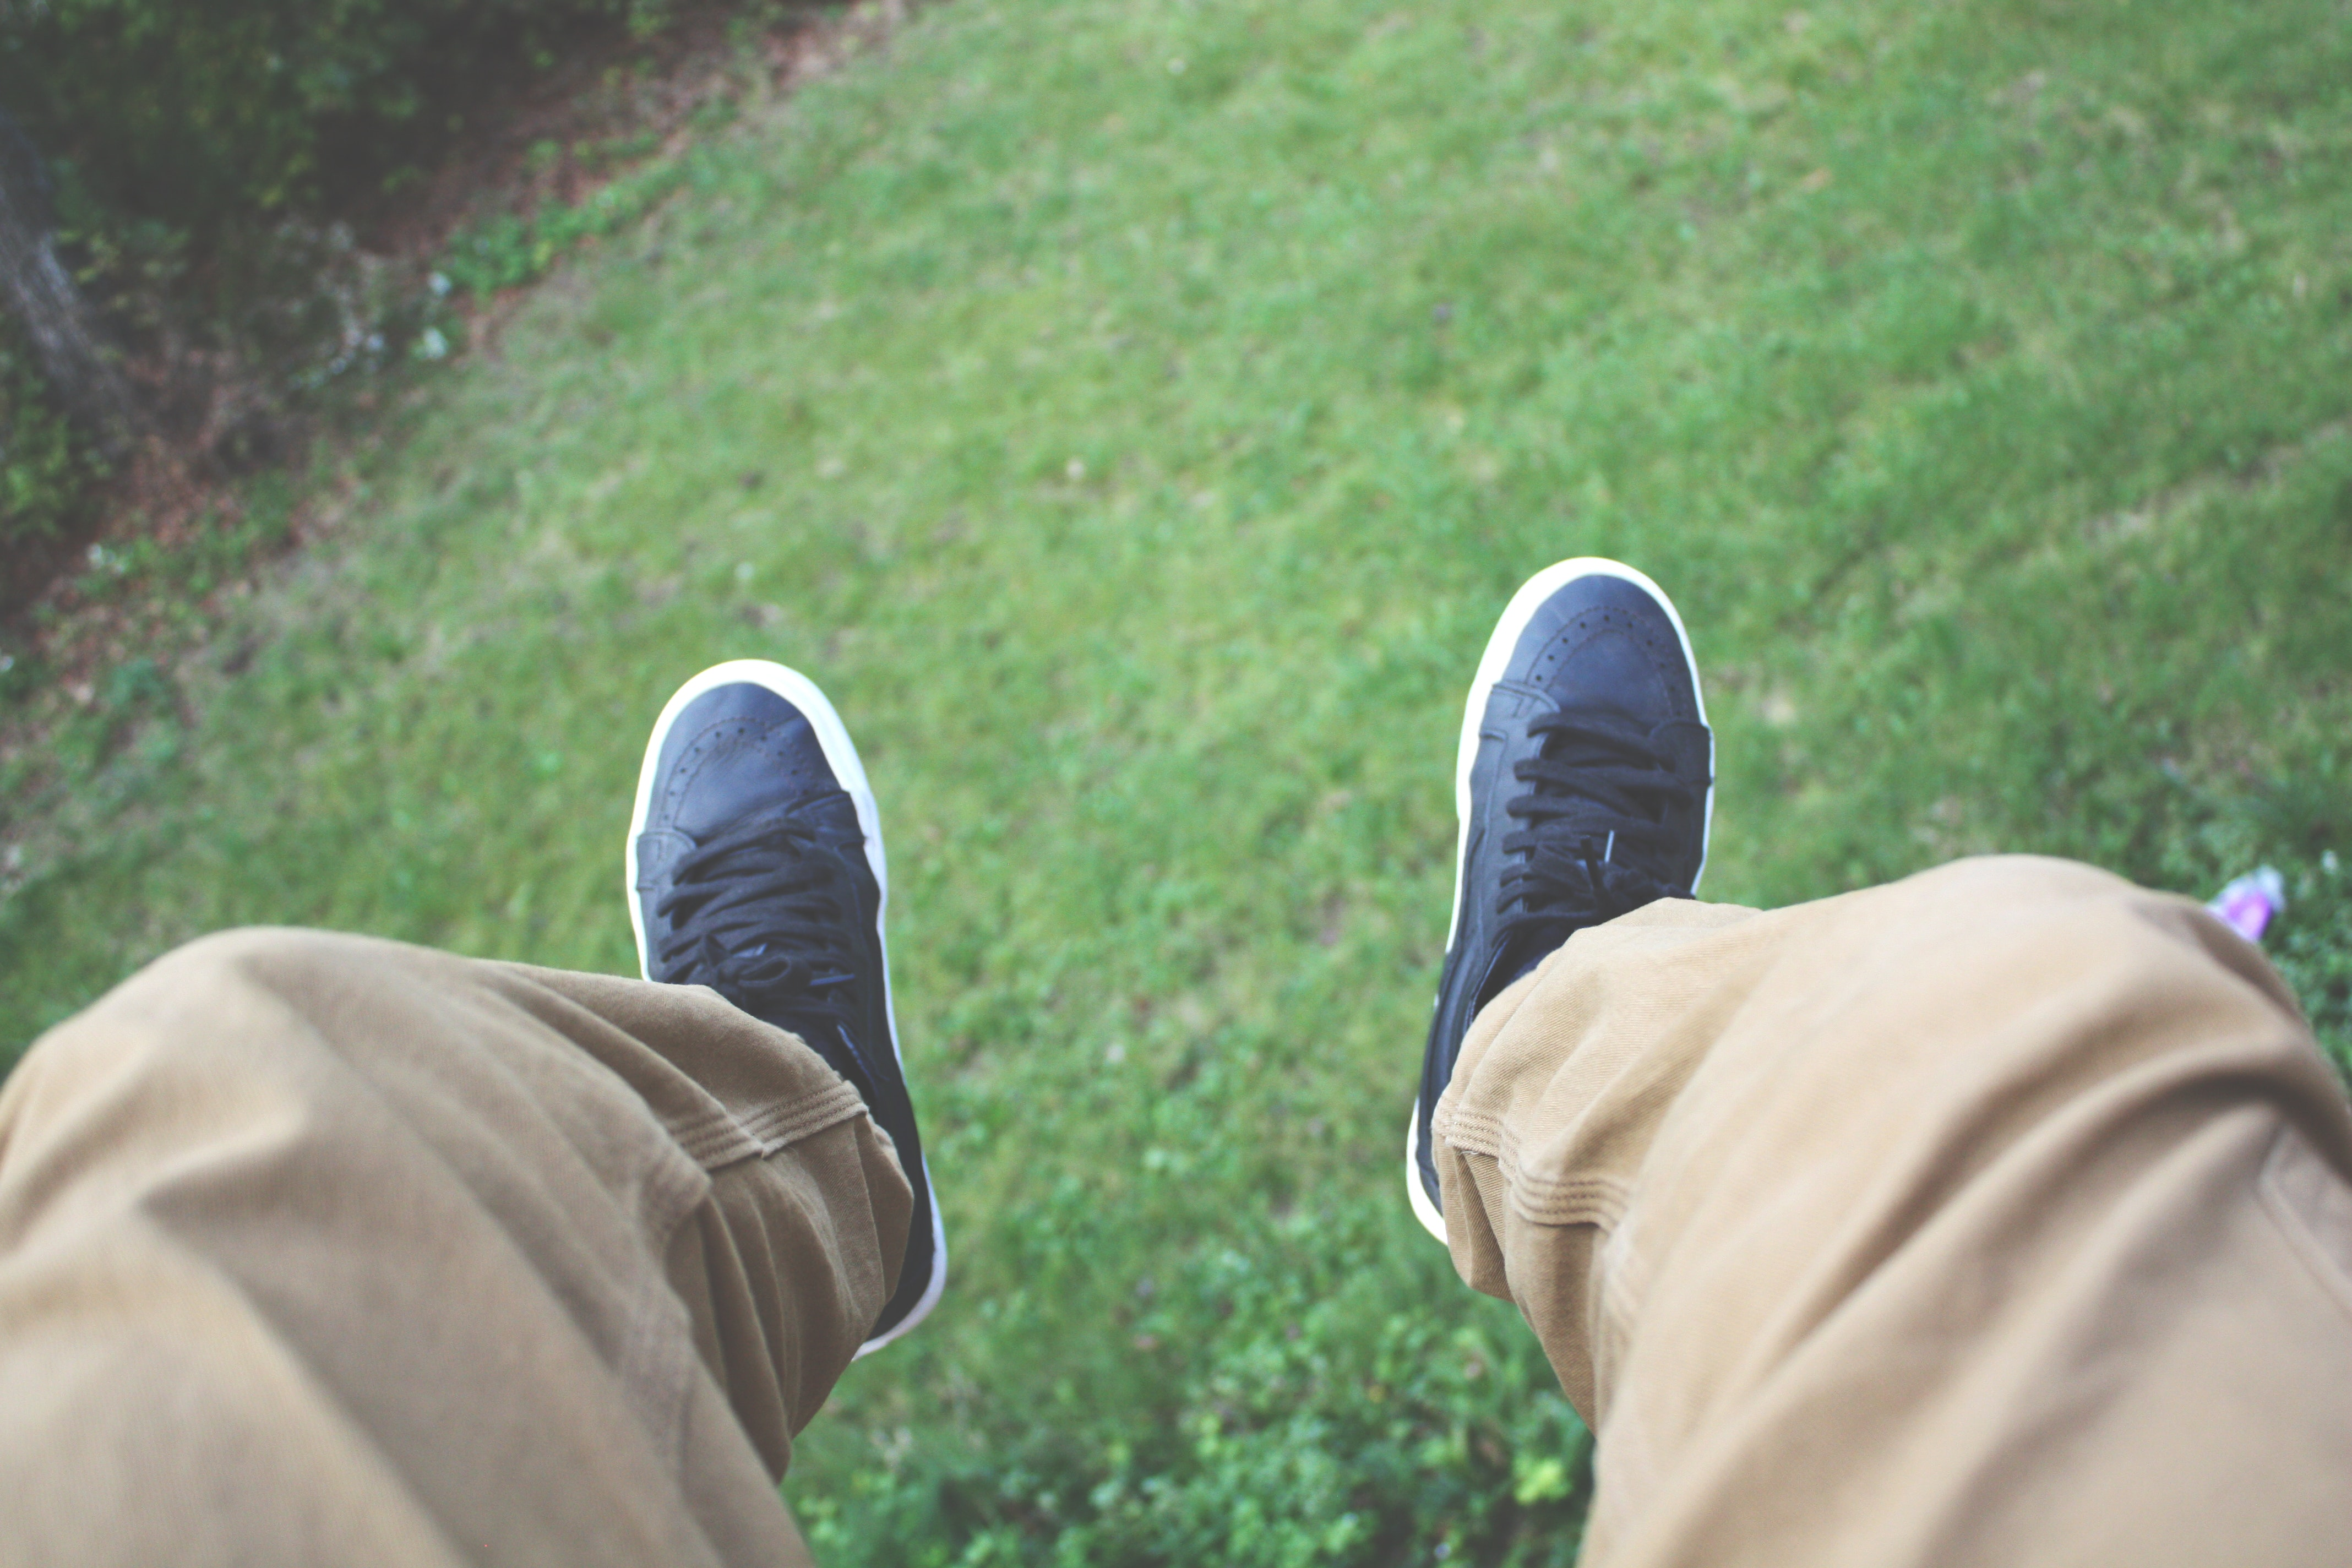 Person Wearing Brown Pants and Black and White Shoes, Blur, Close-up, Denim pants, Focus, HQ Photo